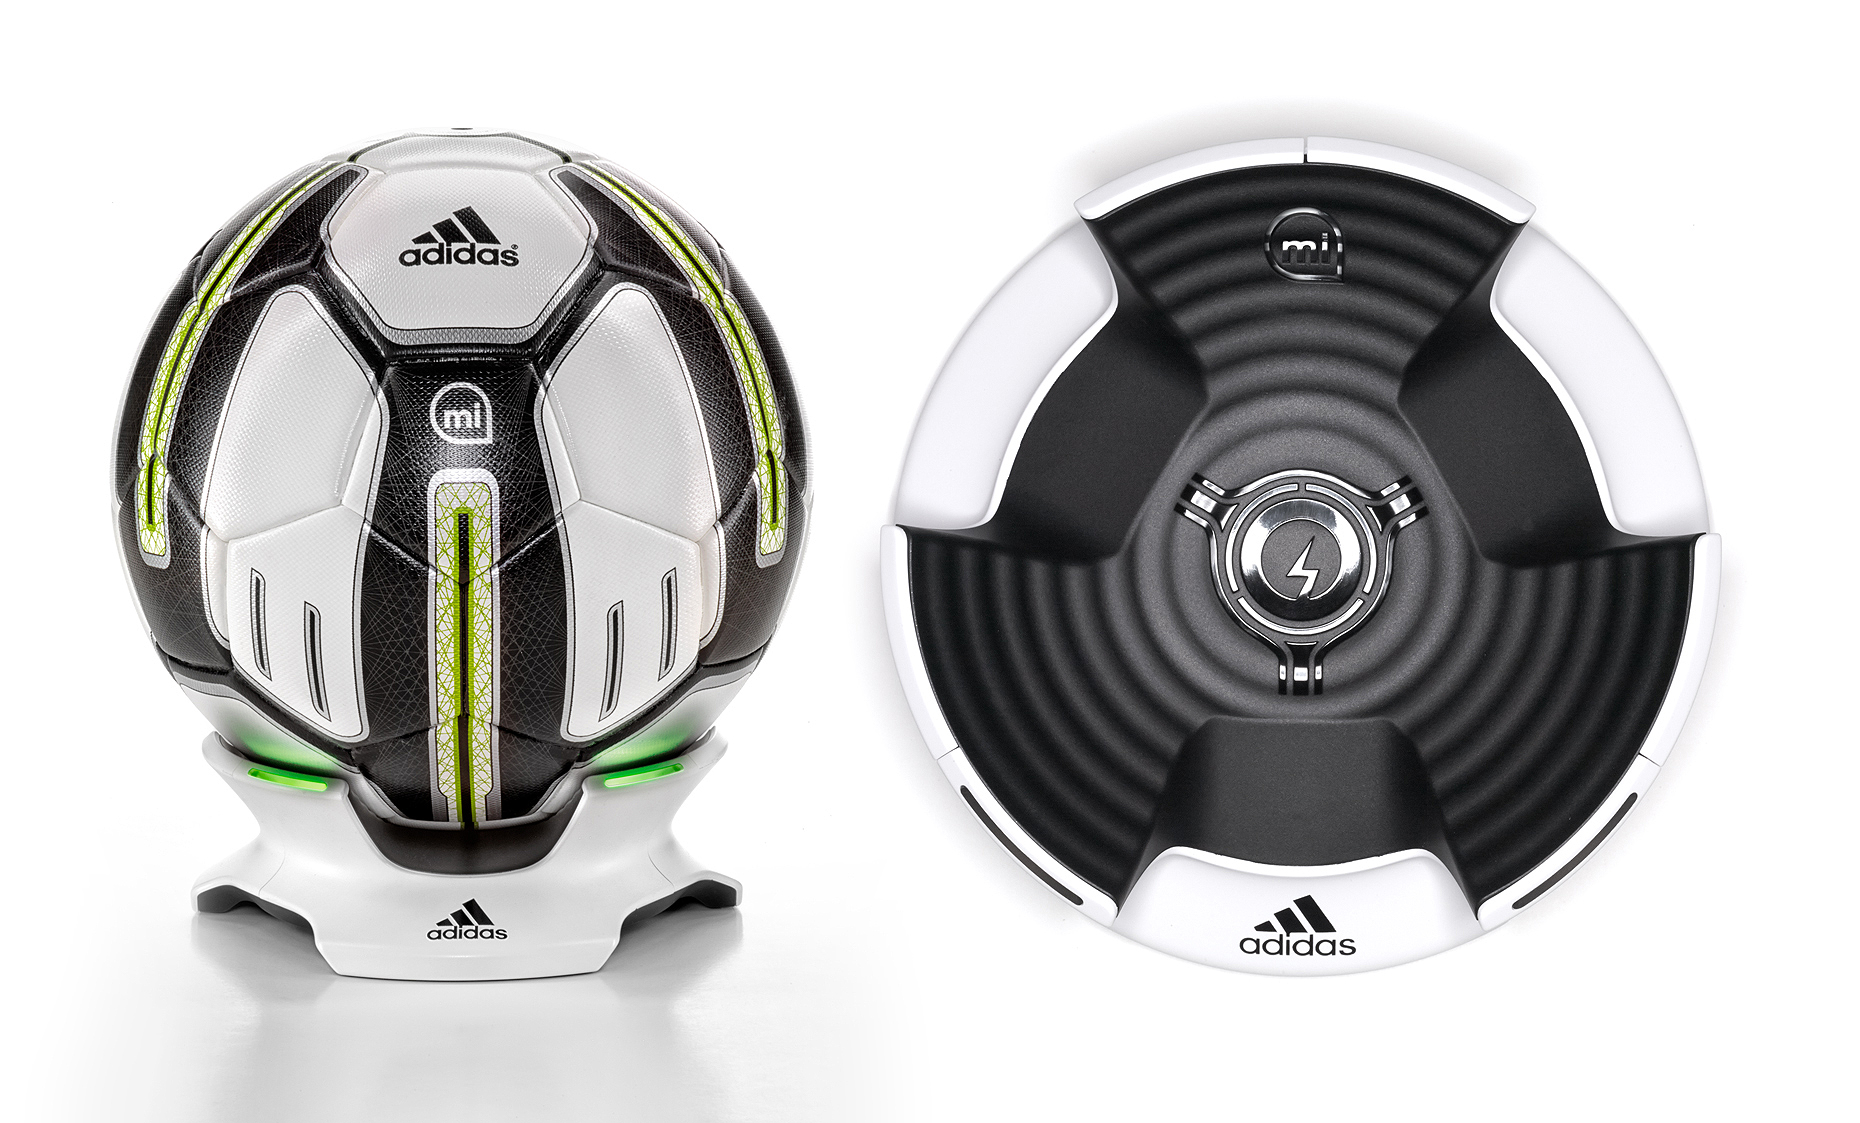 19-adidas-ball-and-charger_AP